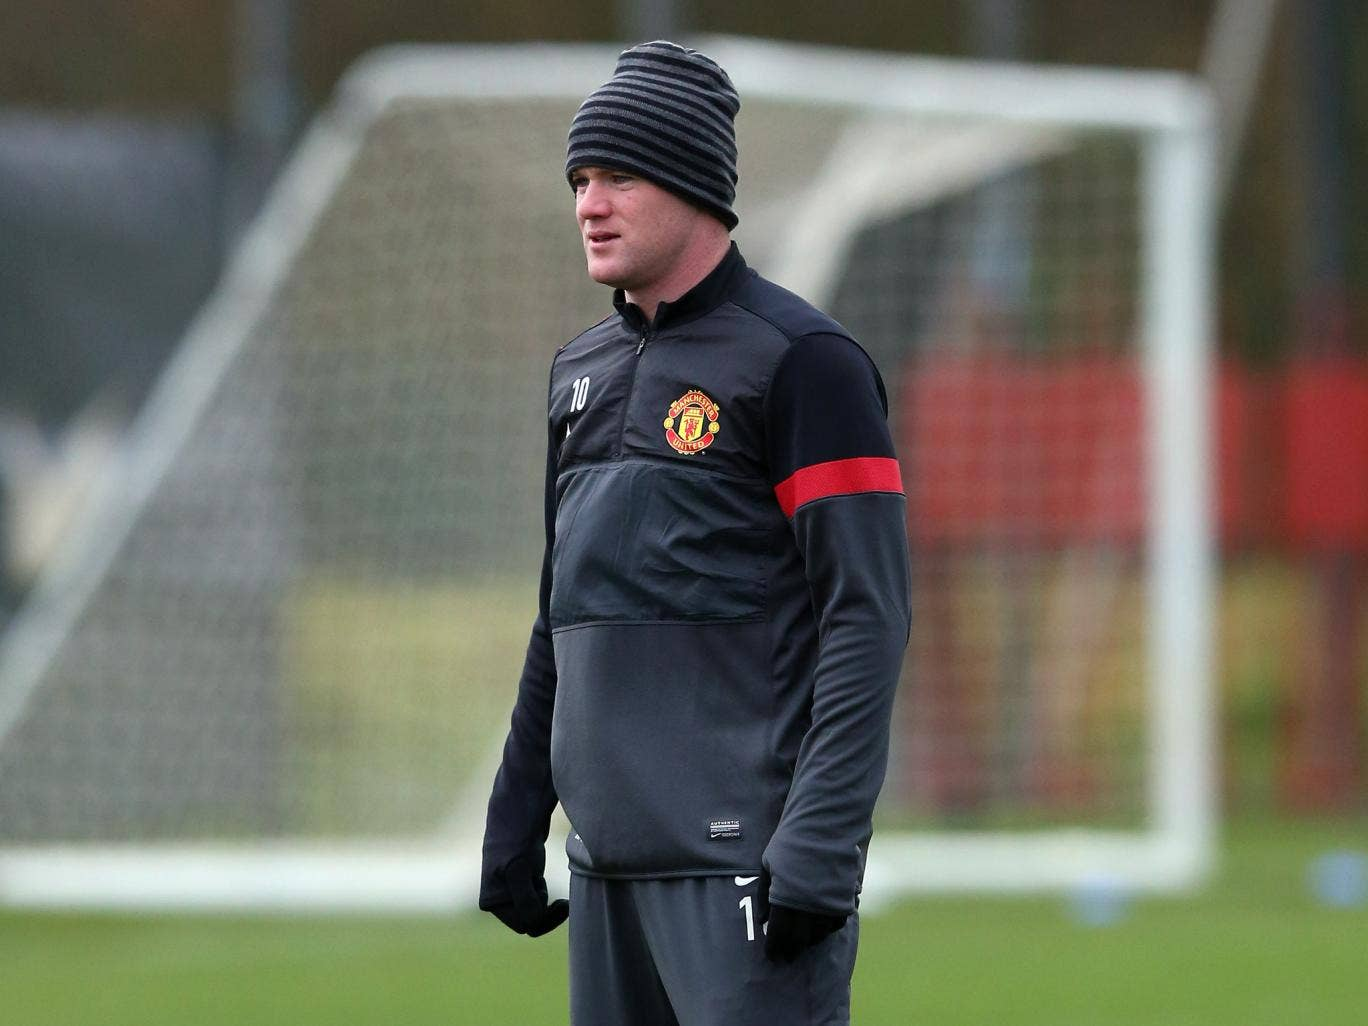 Wayne Rooney will not travel to Turkey, even though he was able to return to training this morning